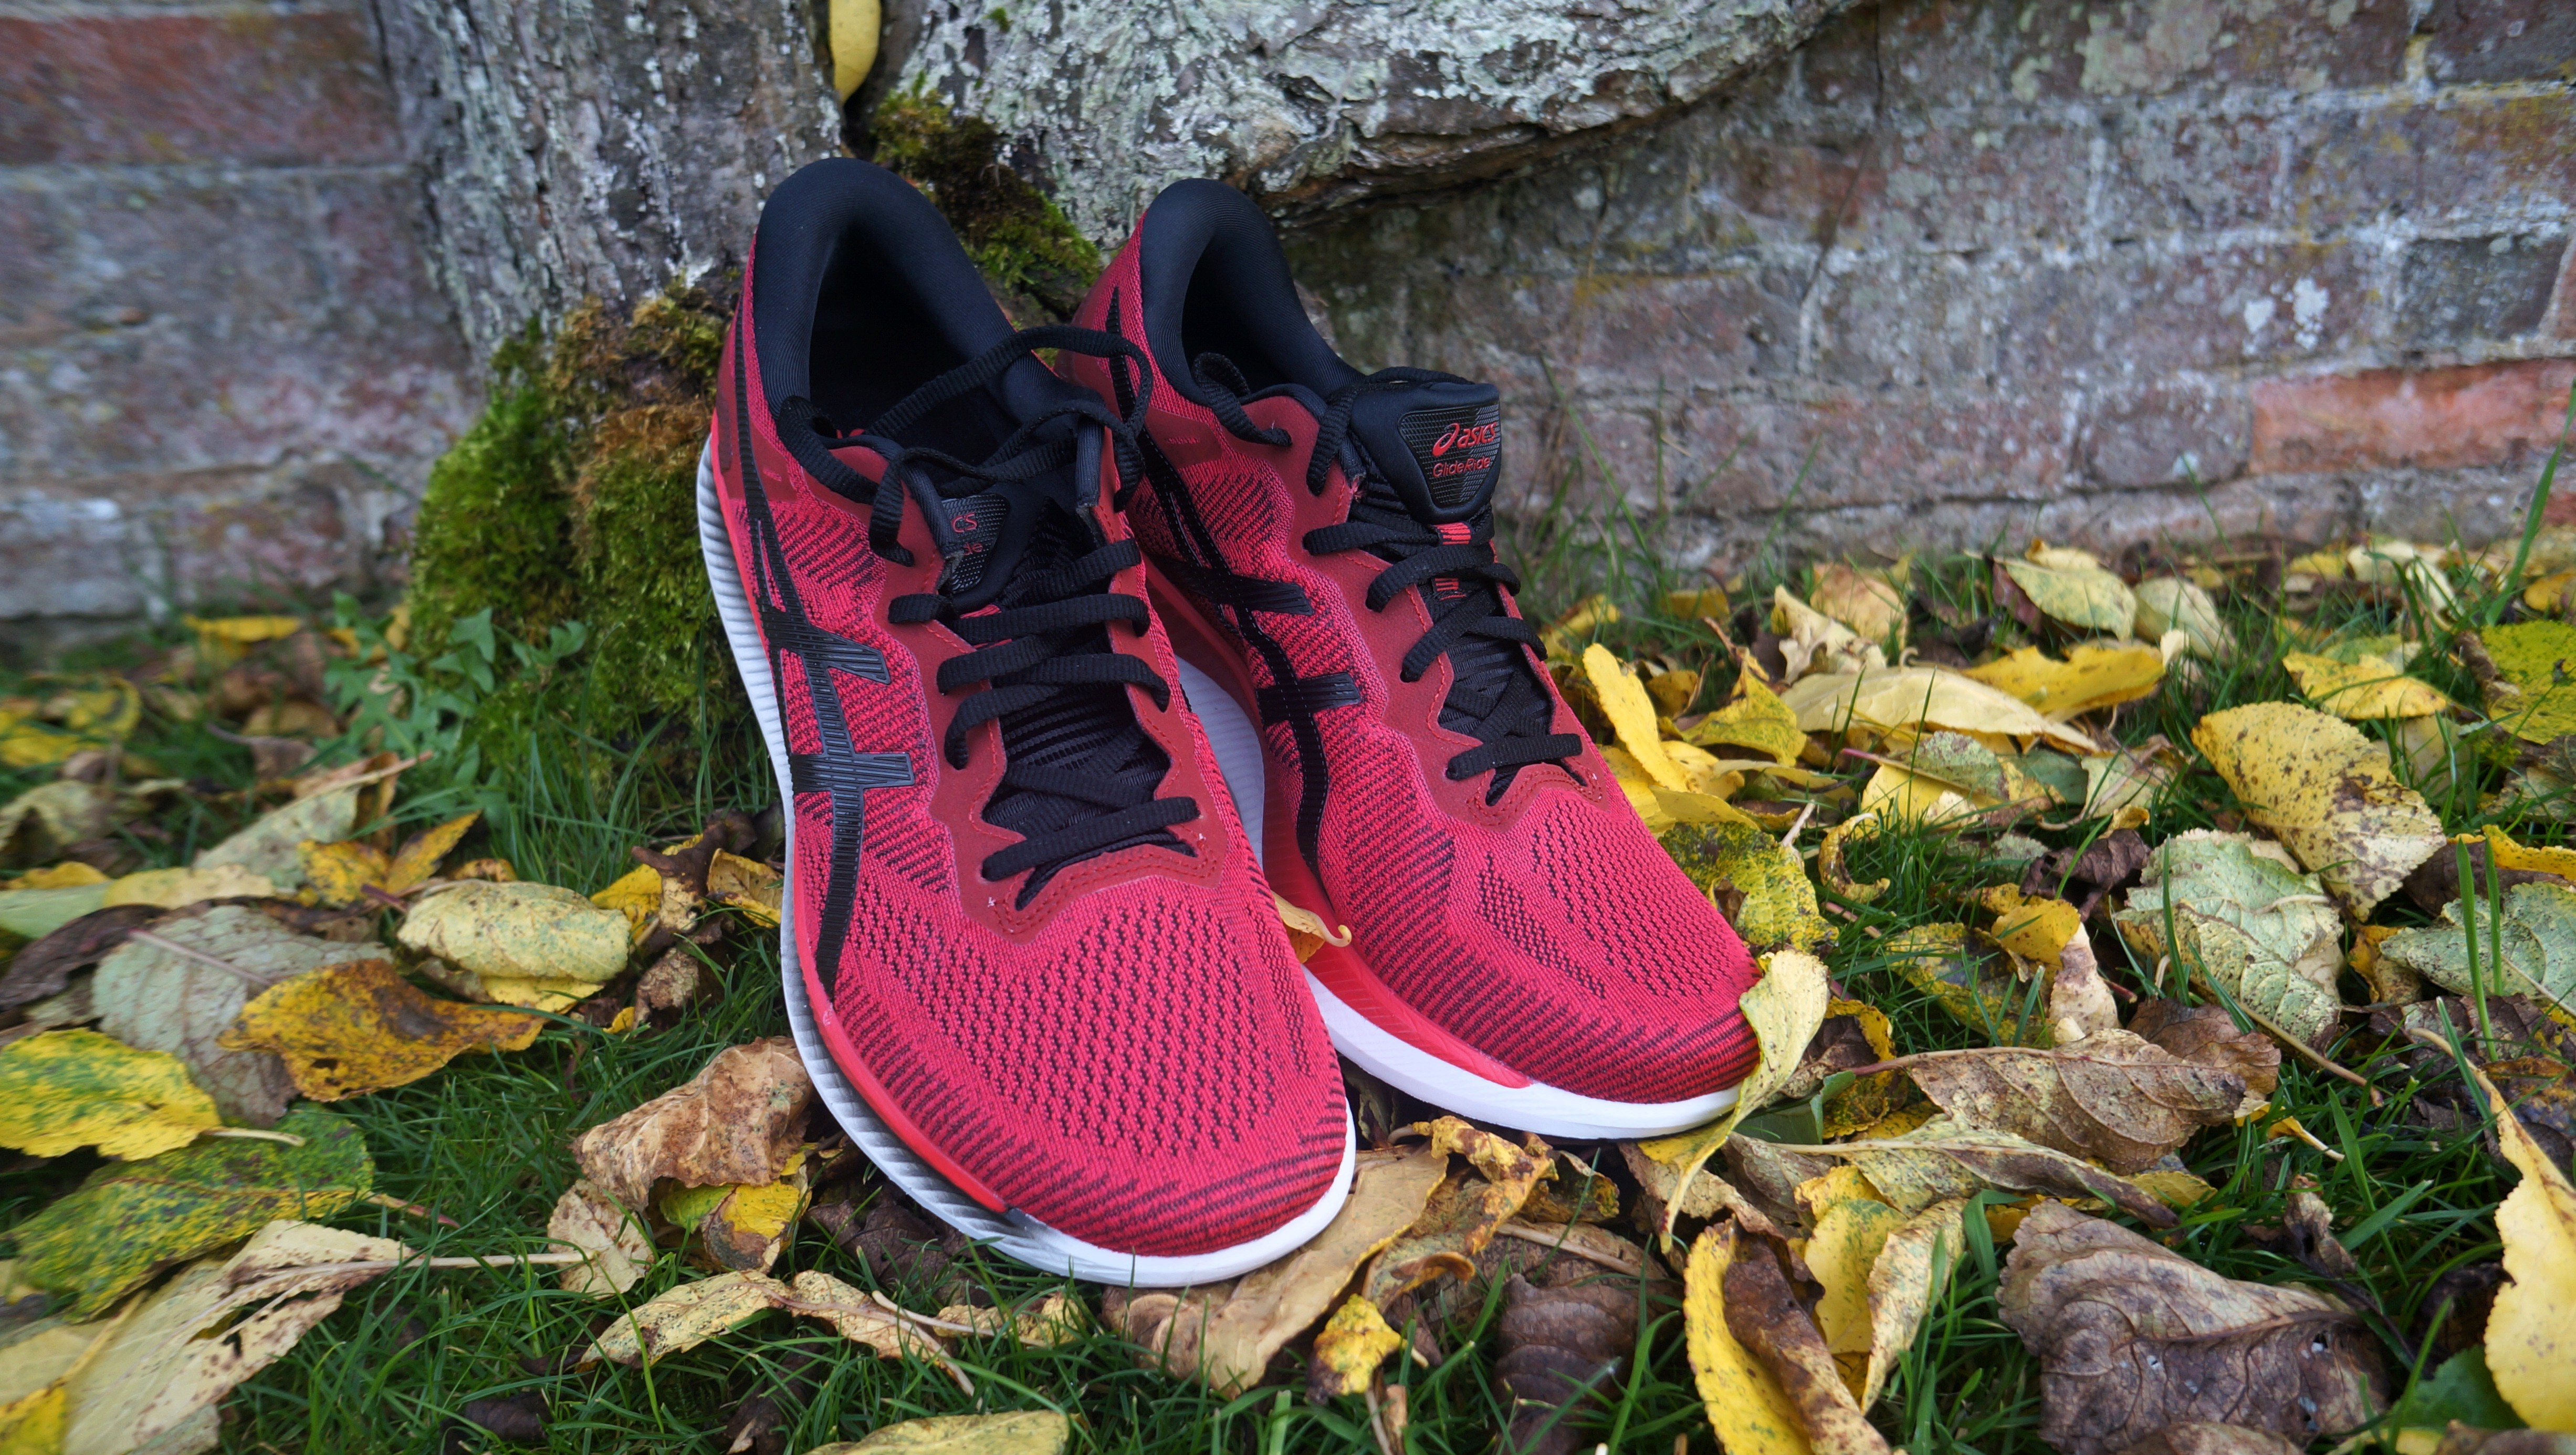 Asics GlideRide - little to no traction forces you to stick to the hard surface